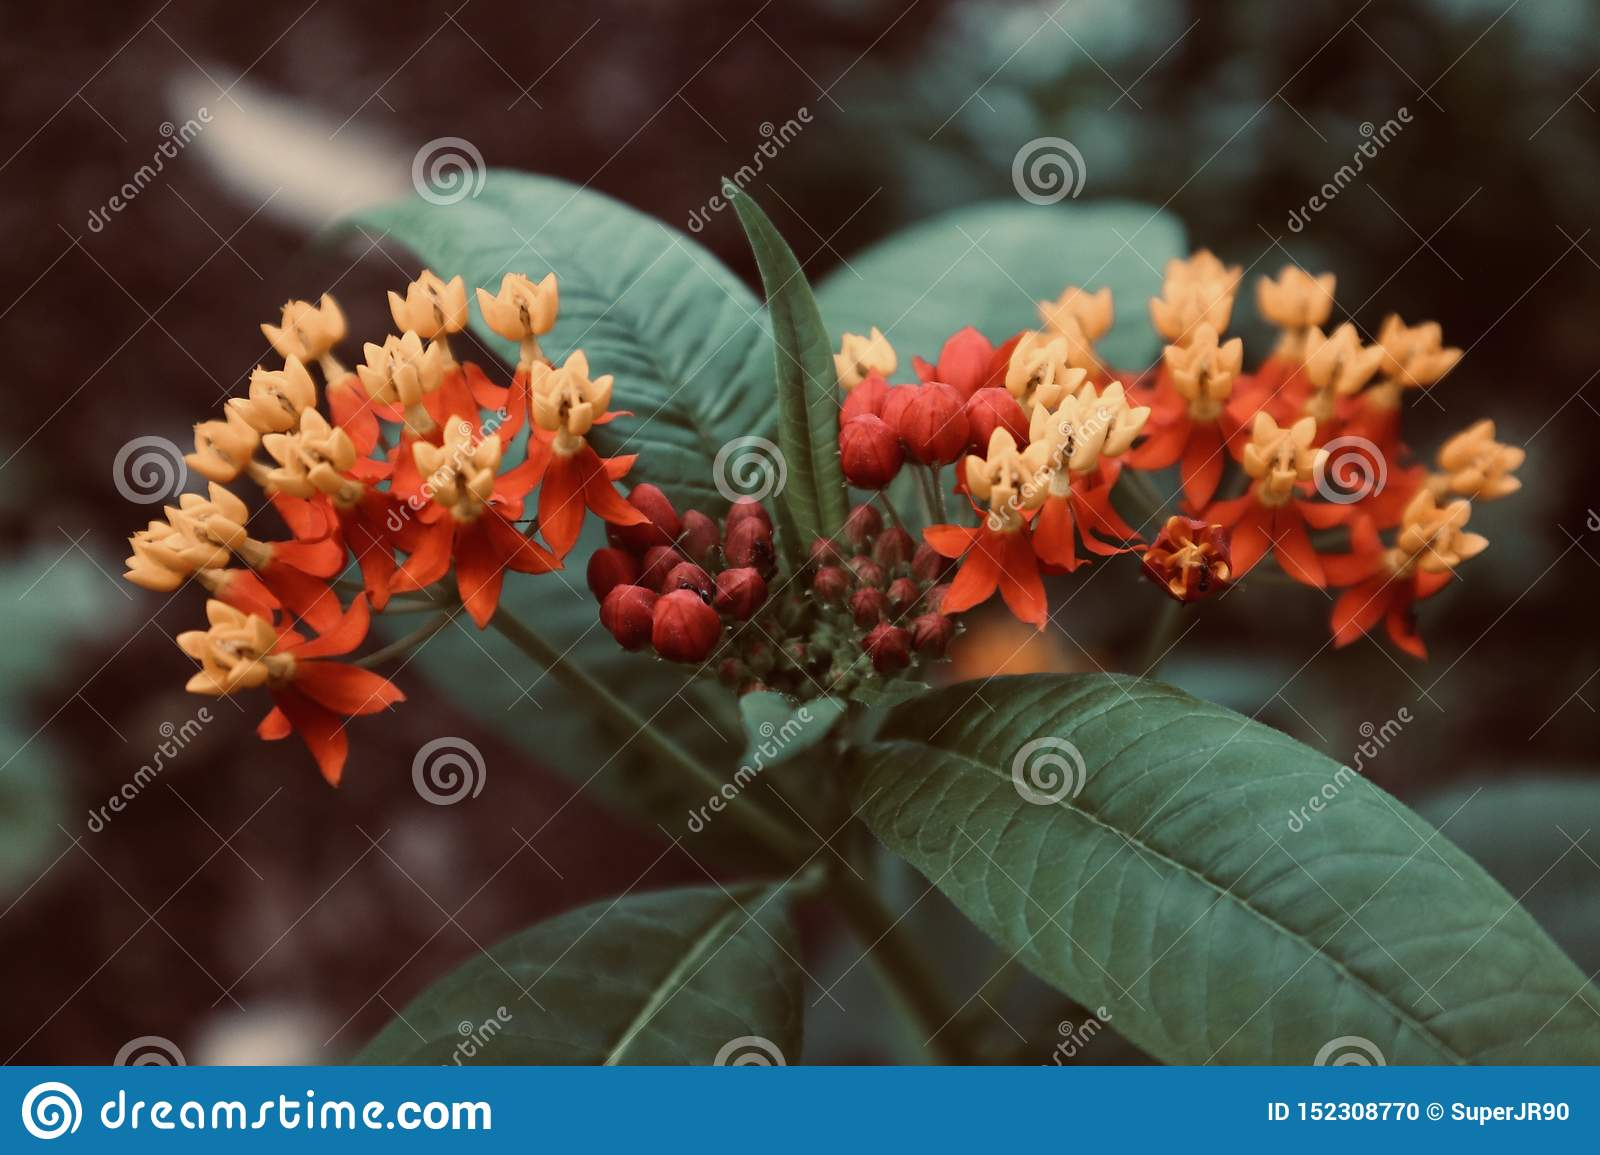 Beautiful red orange yellow with background close up flower blooming wild flower